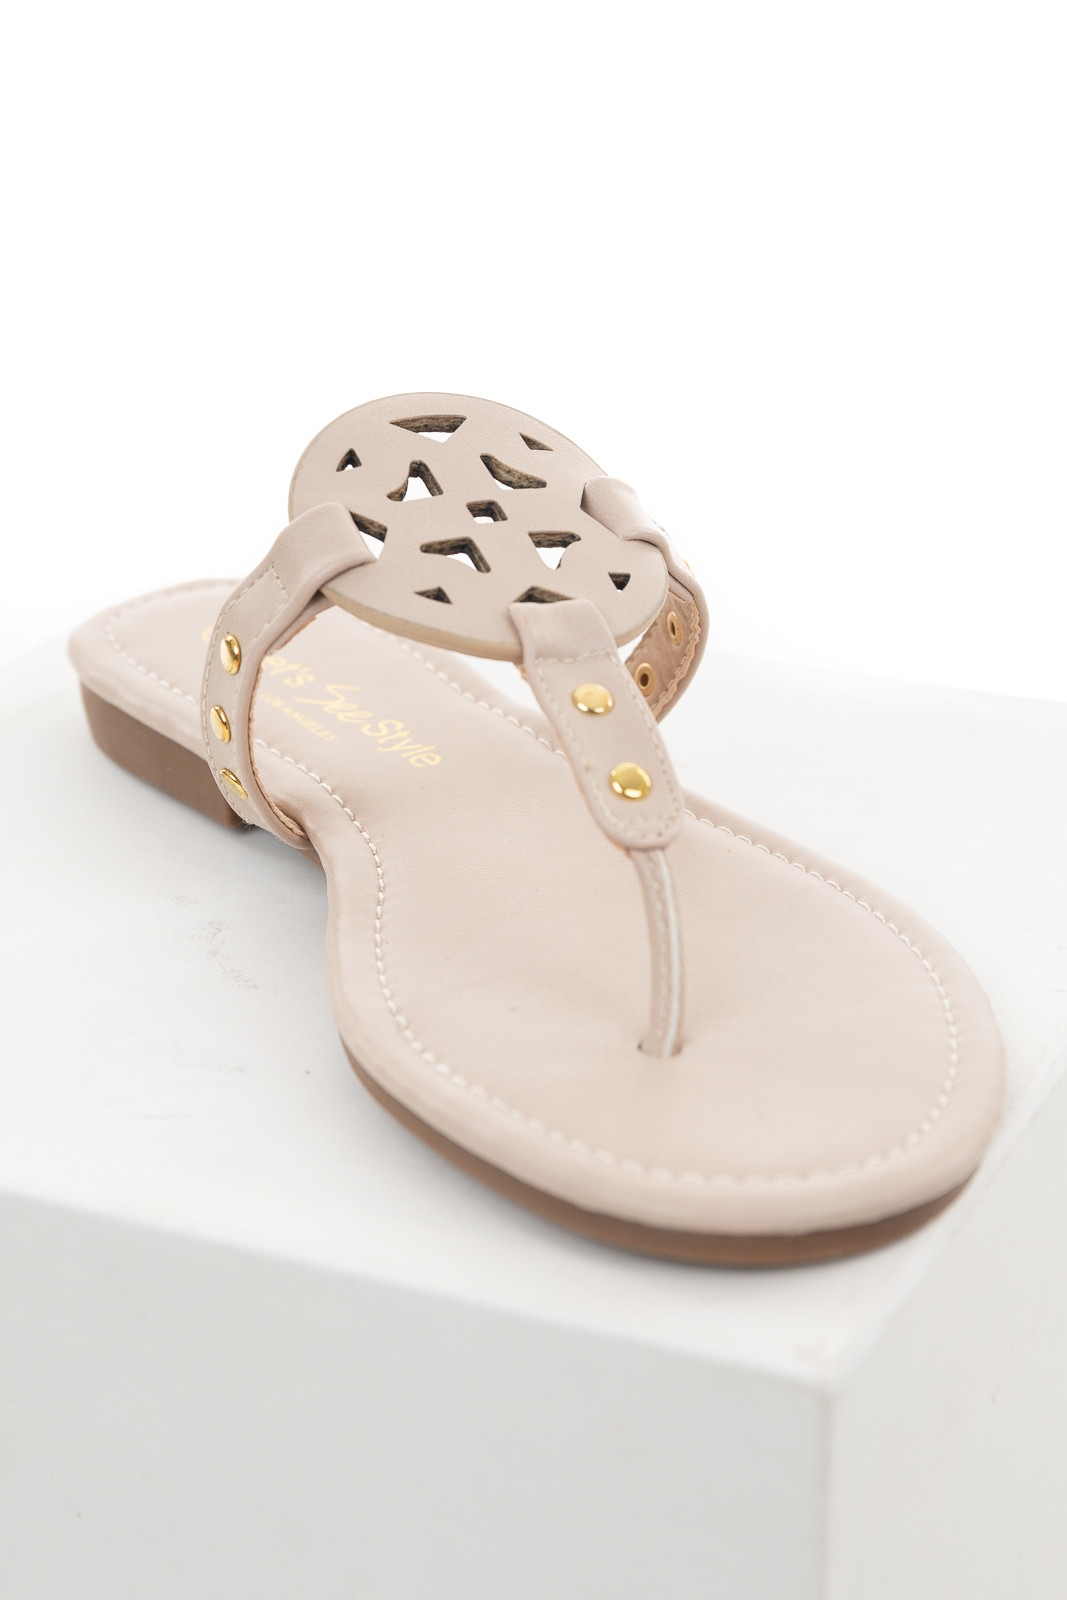 Oatmeal Thong Sandals with Gold Studs and Laser Cutouts